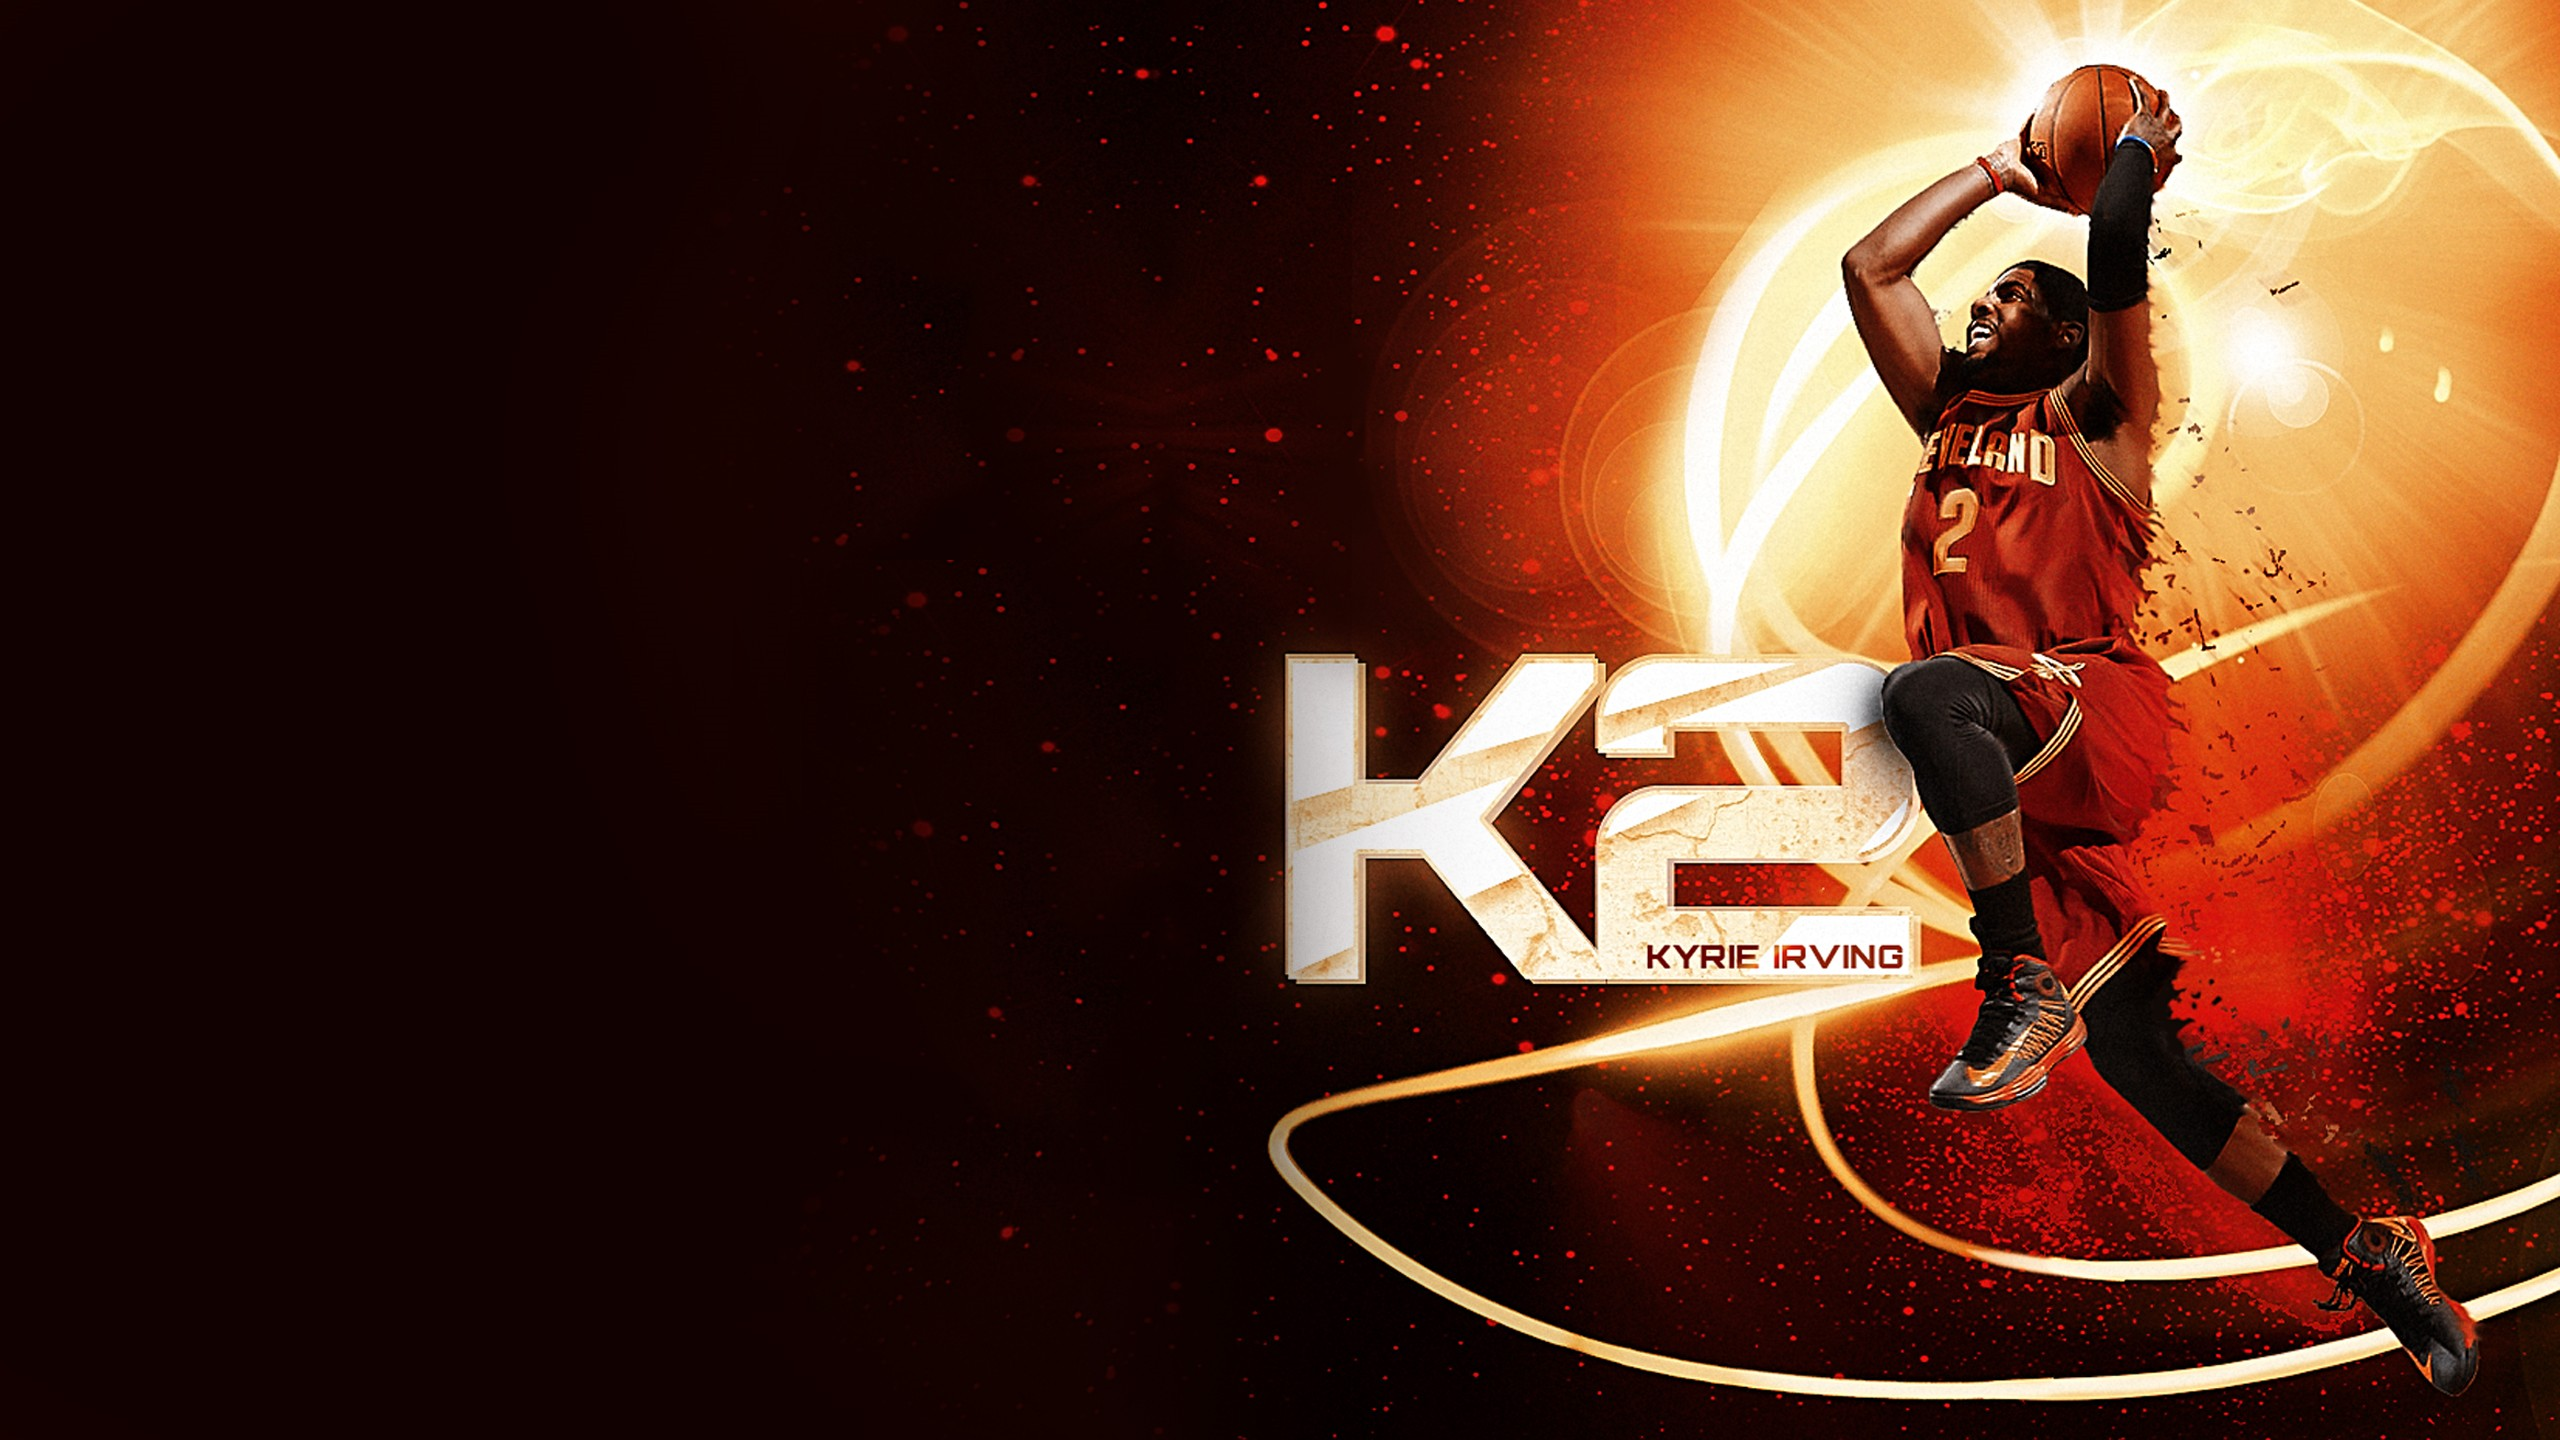 Kyrie Irving wallpaper ·① Download free beautiful High ...Kyrie Irving Wallpaper Ipad